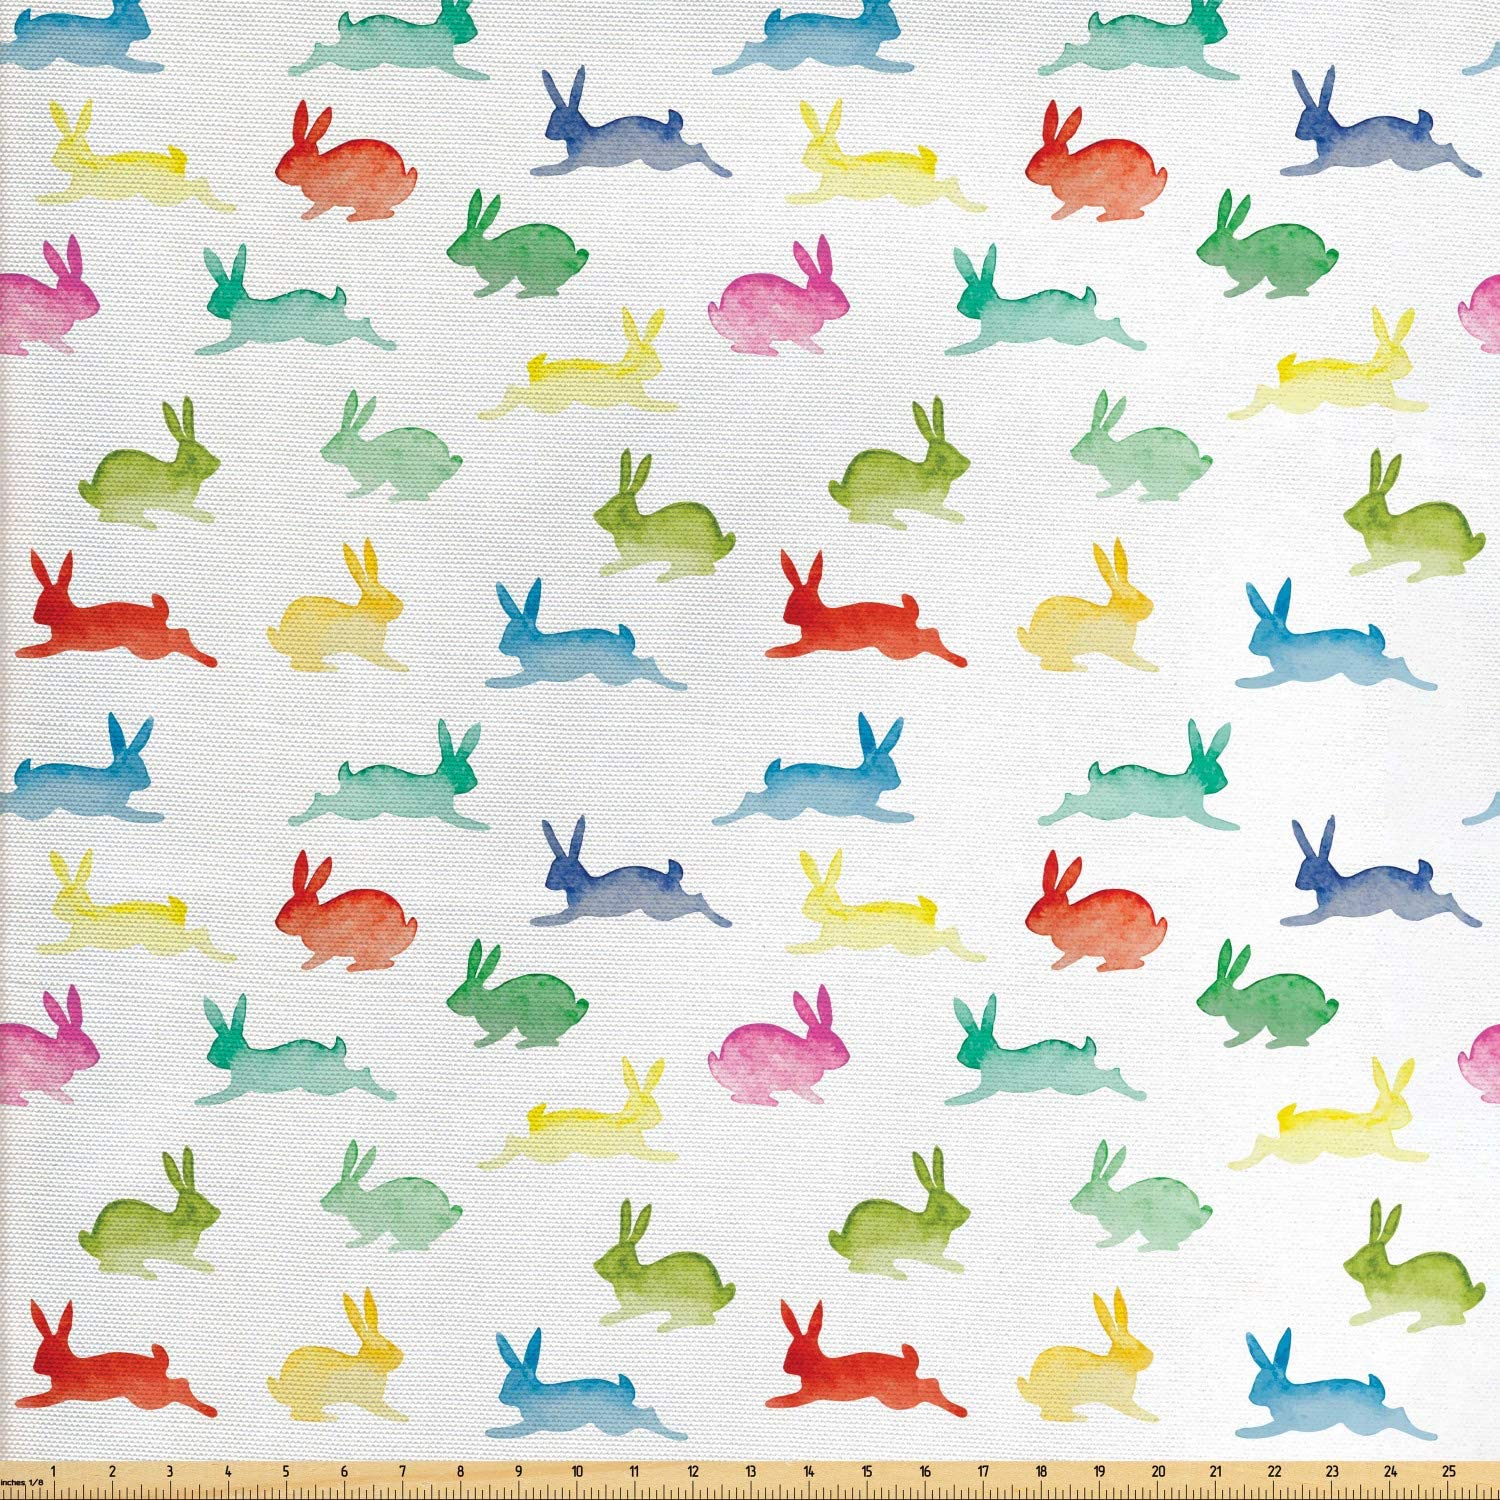 Lunarable Paint Fabric by The Yard, Rabbits in Different Poses Jumping Running Bunnies Happy Easter Paintbrush Art, Decorative Fabric for Upholstery and Home Accents, 10 Yards, Green Red